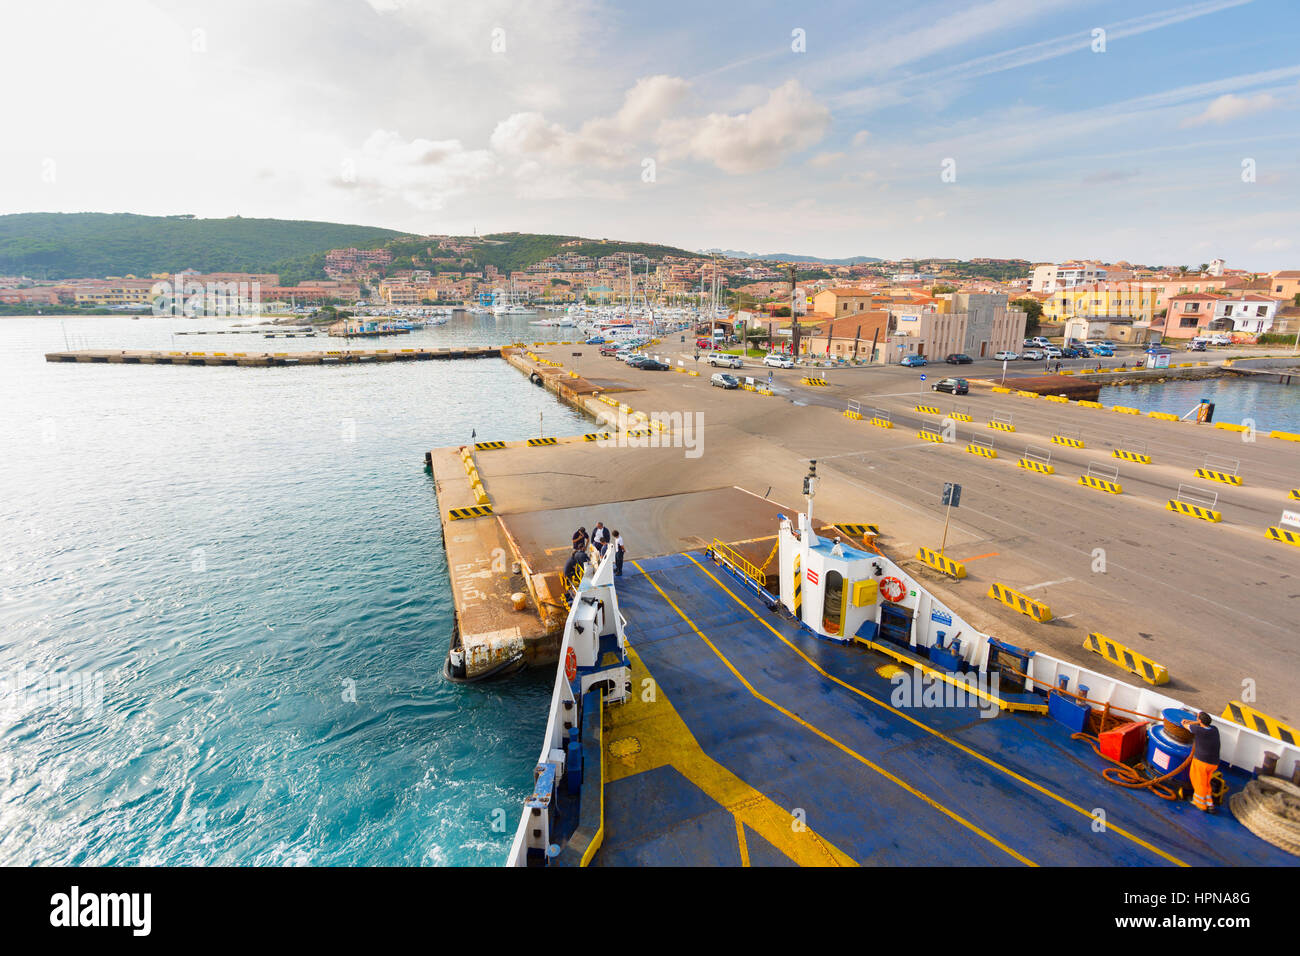 View The harbour of Palau from ferry boat, northern Sardinia,Italy - Stock Image